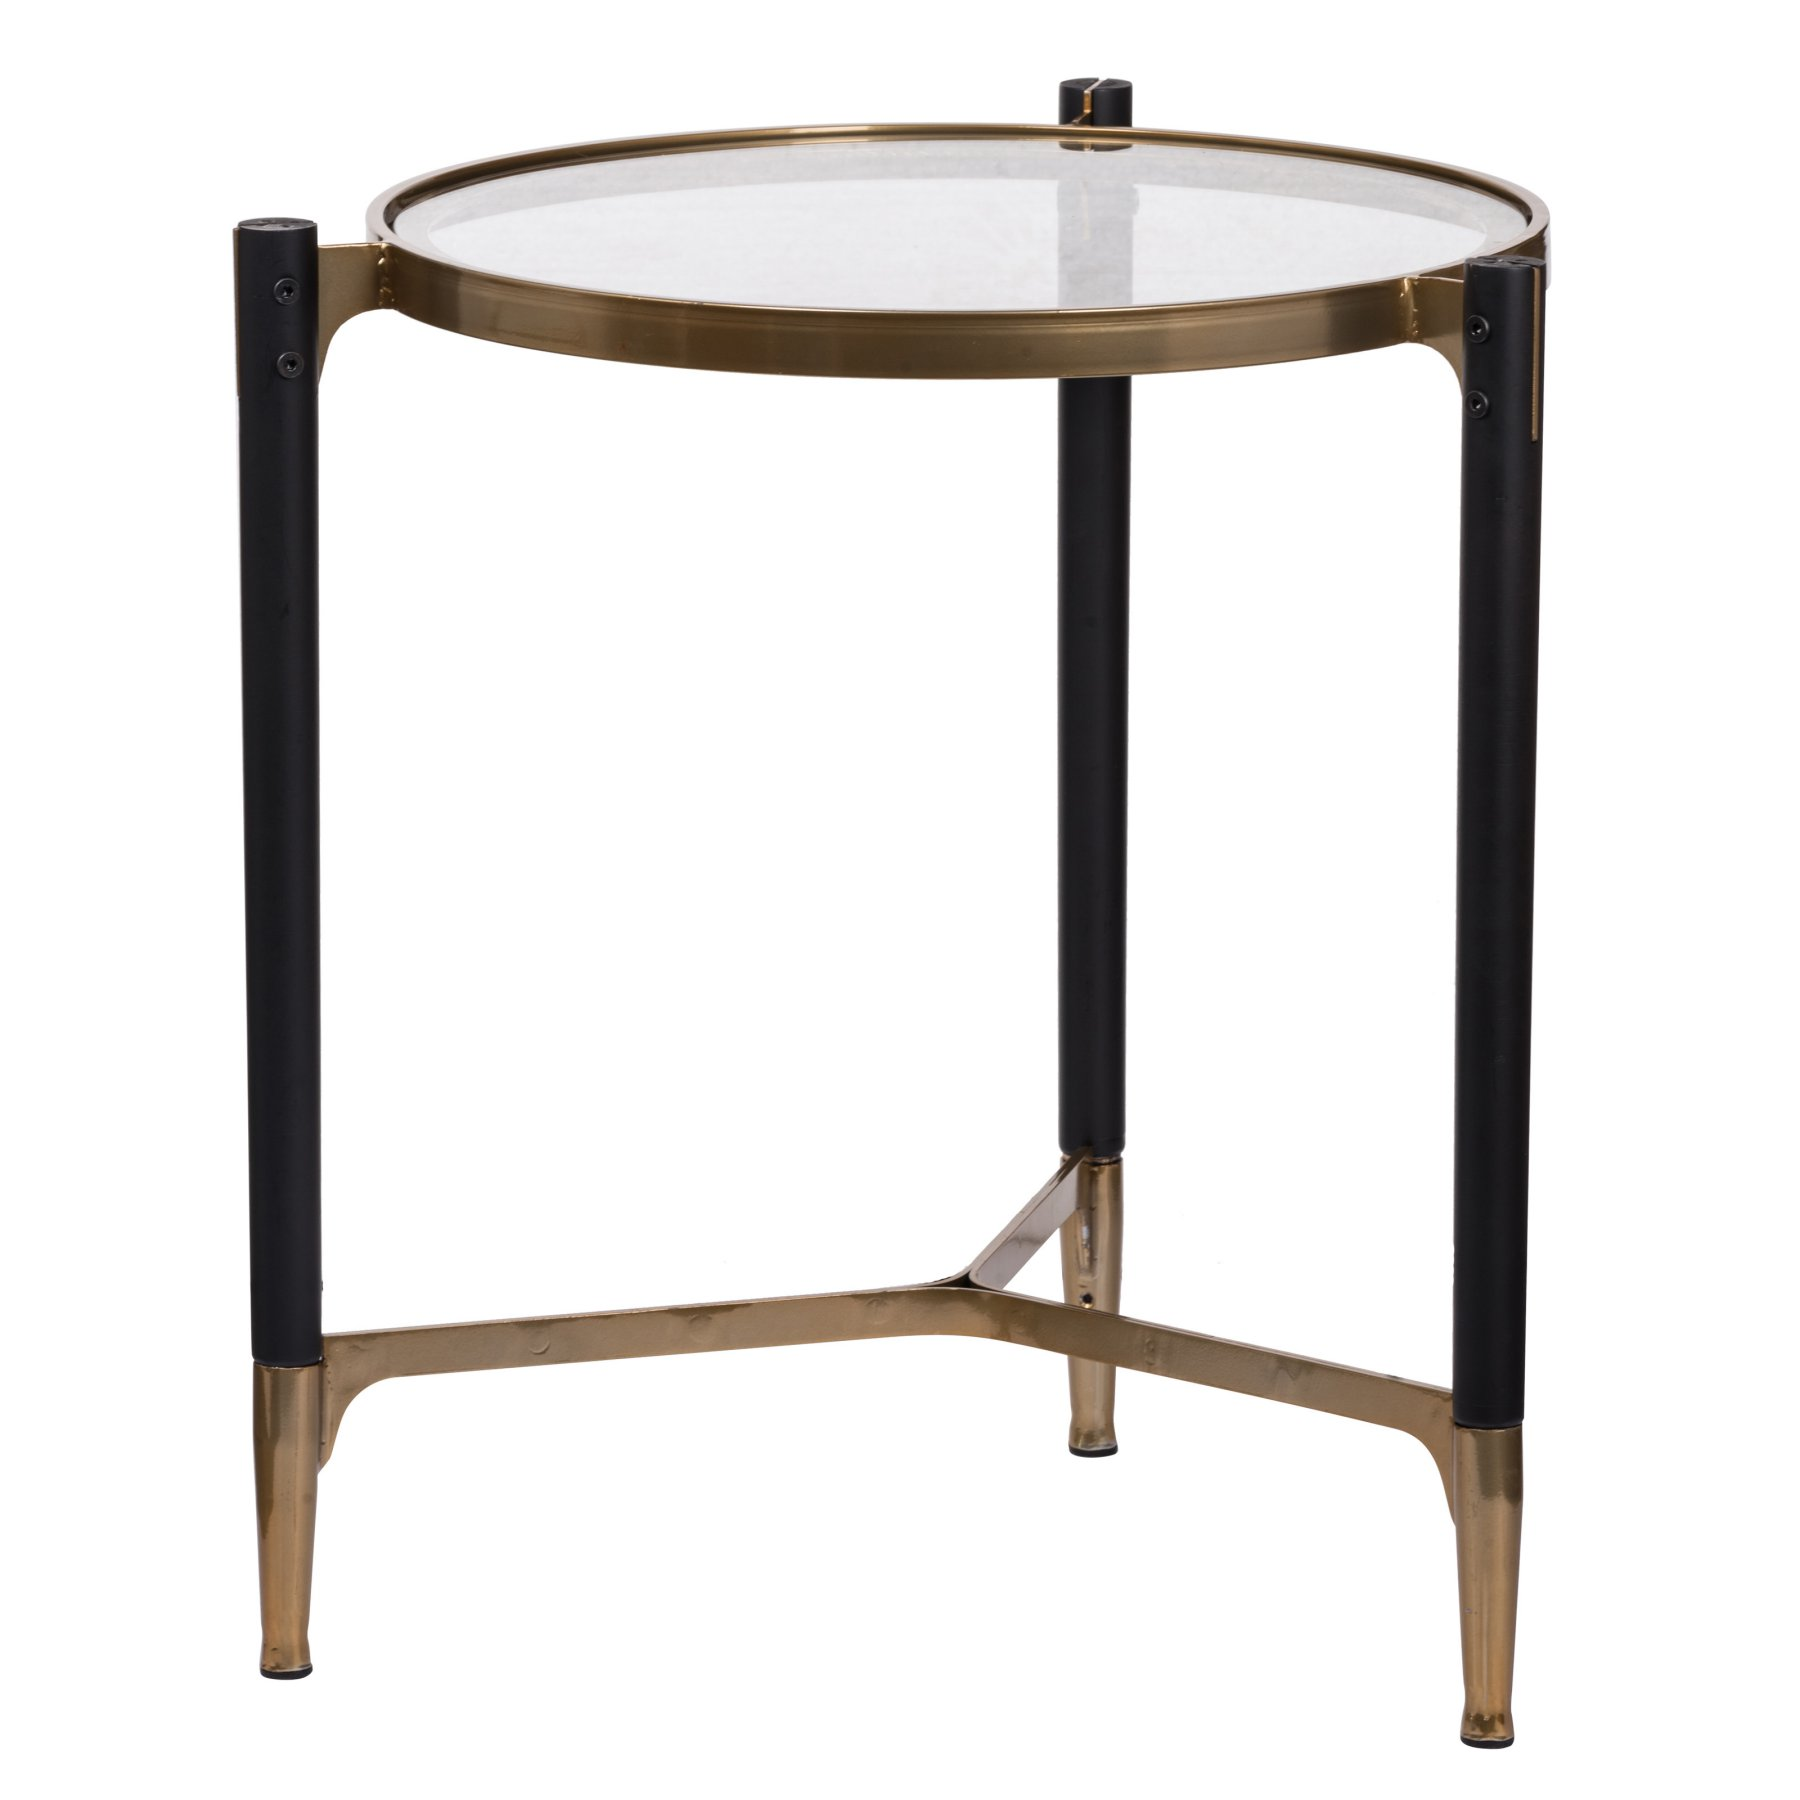 A B Home Park View Round Occasional Table Table Black Side